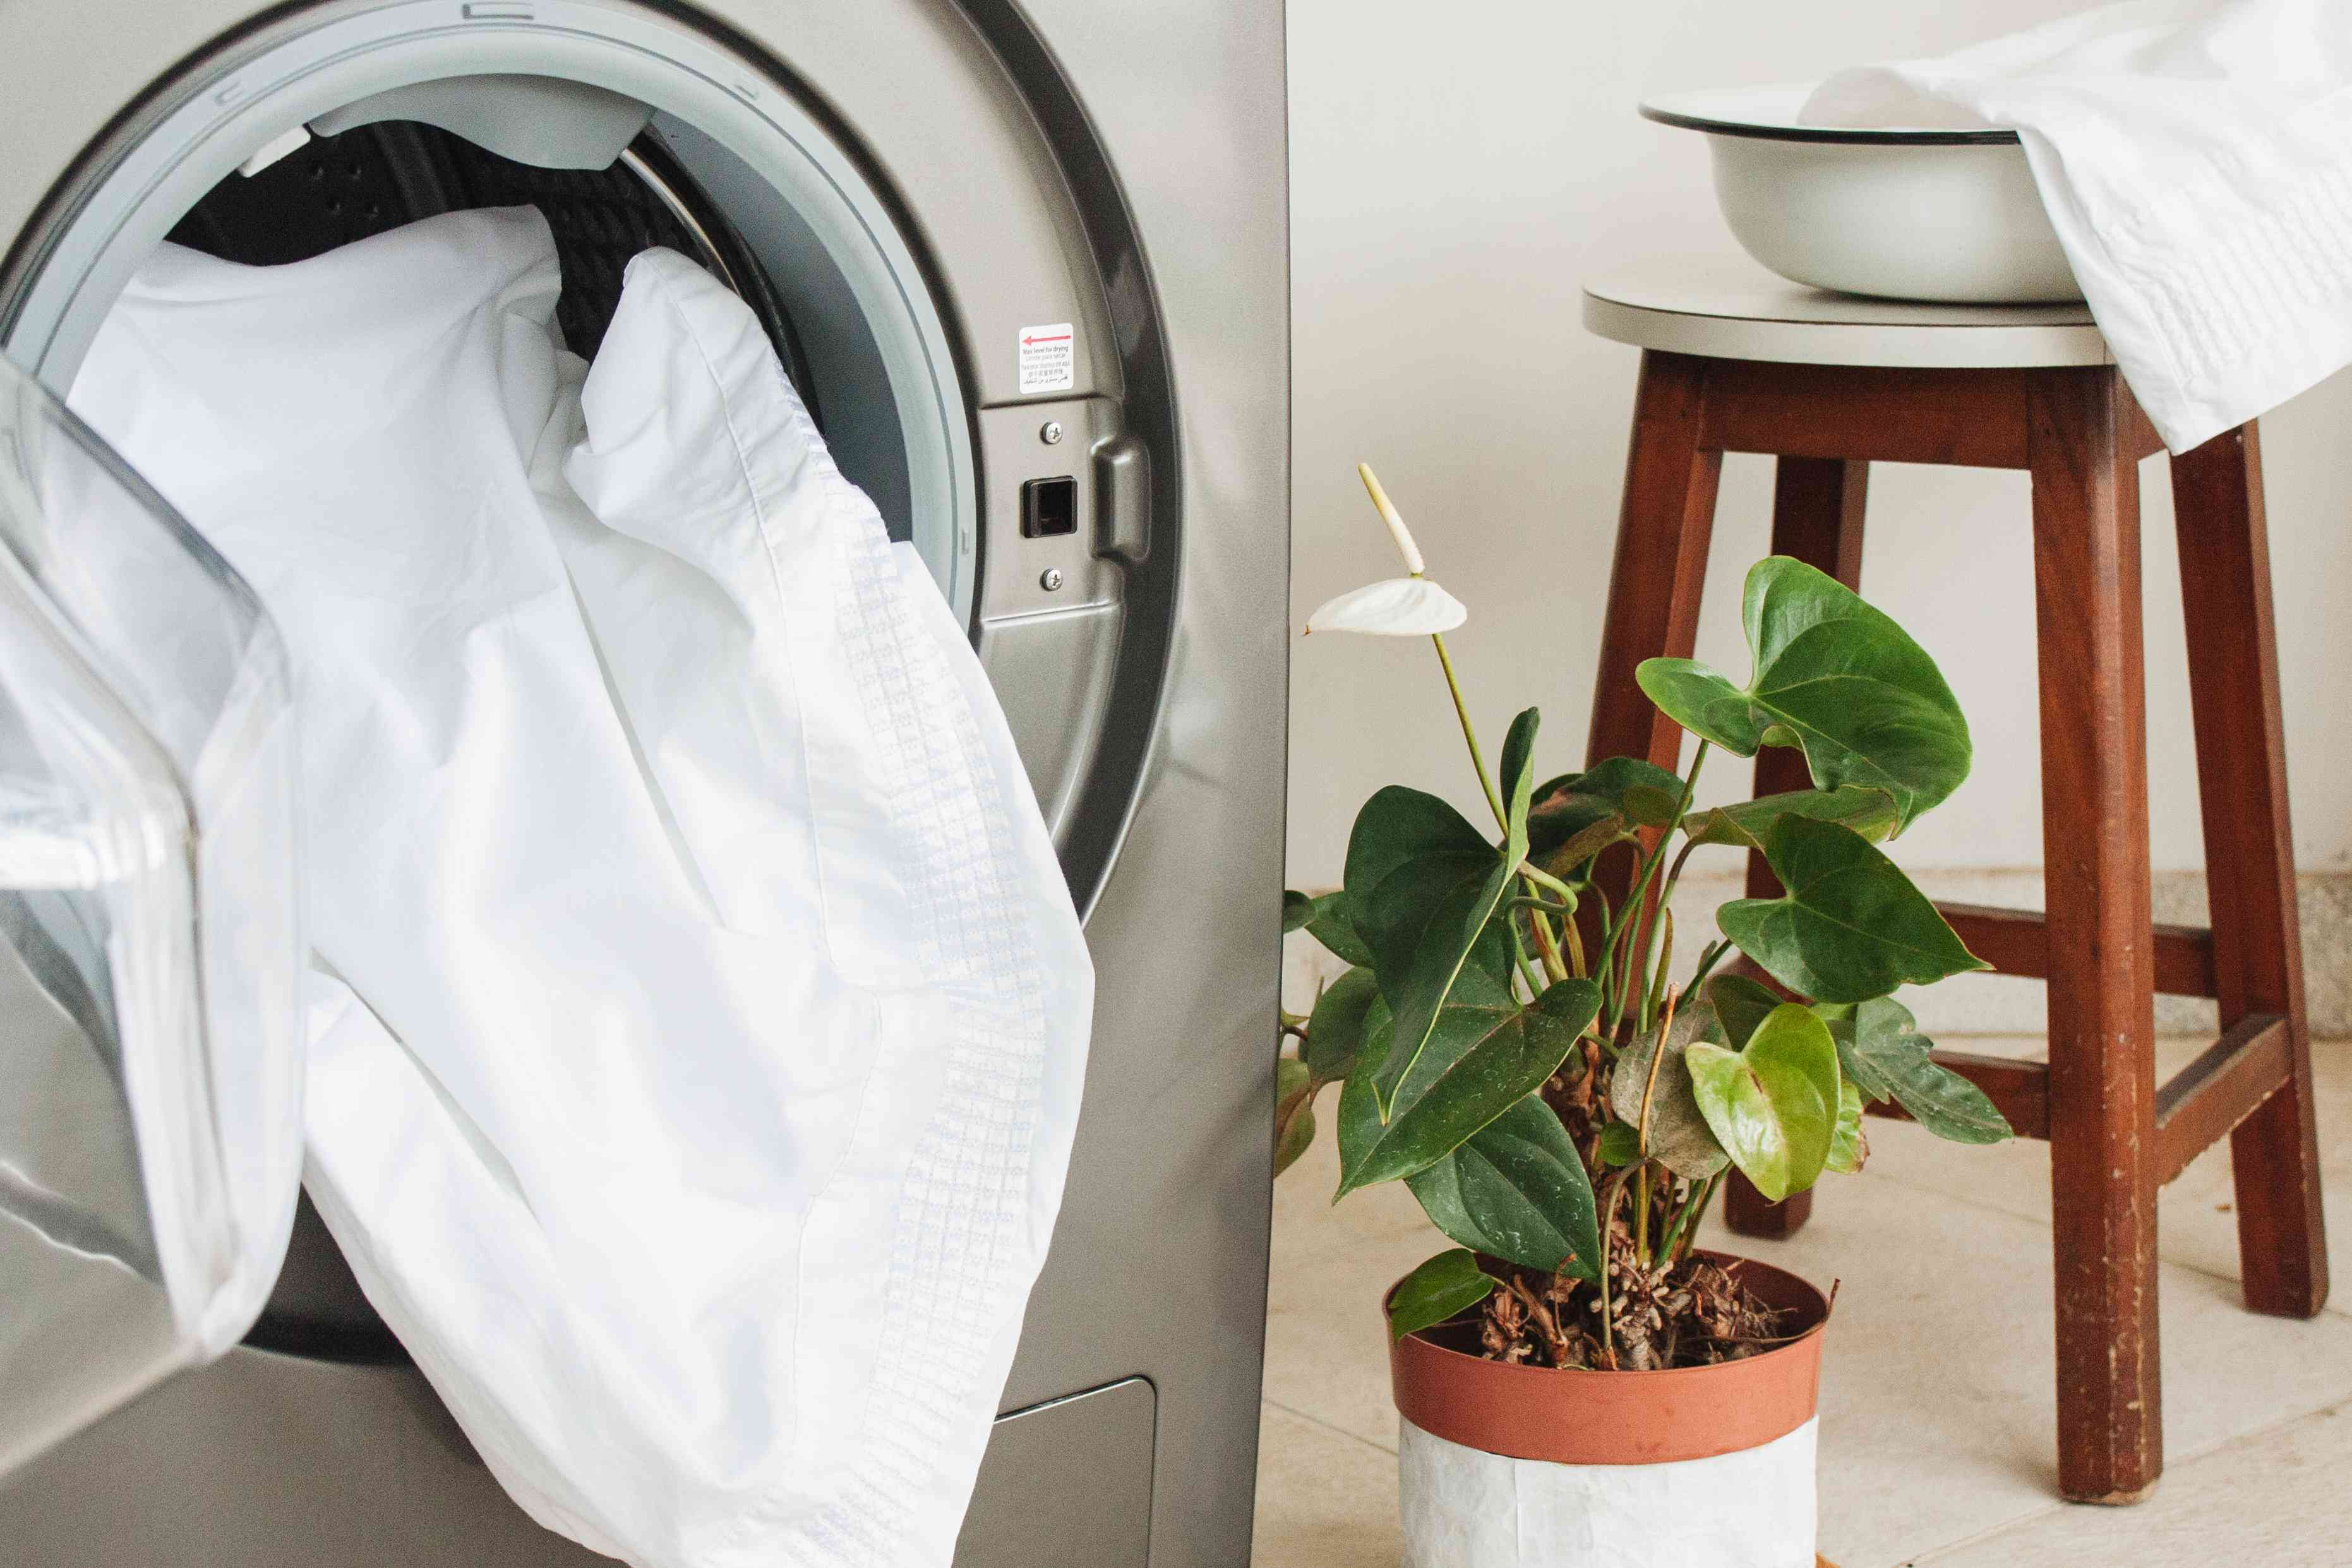 putting dirty bed linens into the washing machine